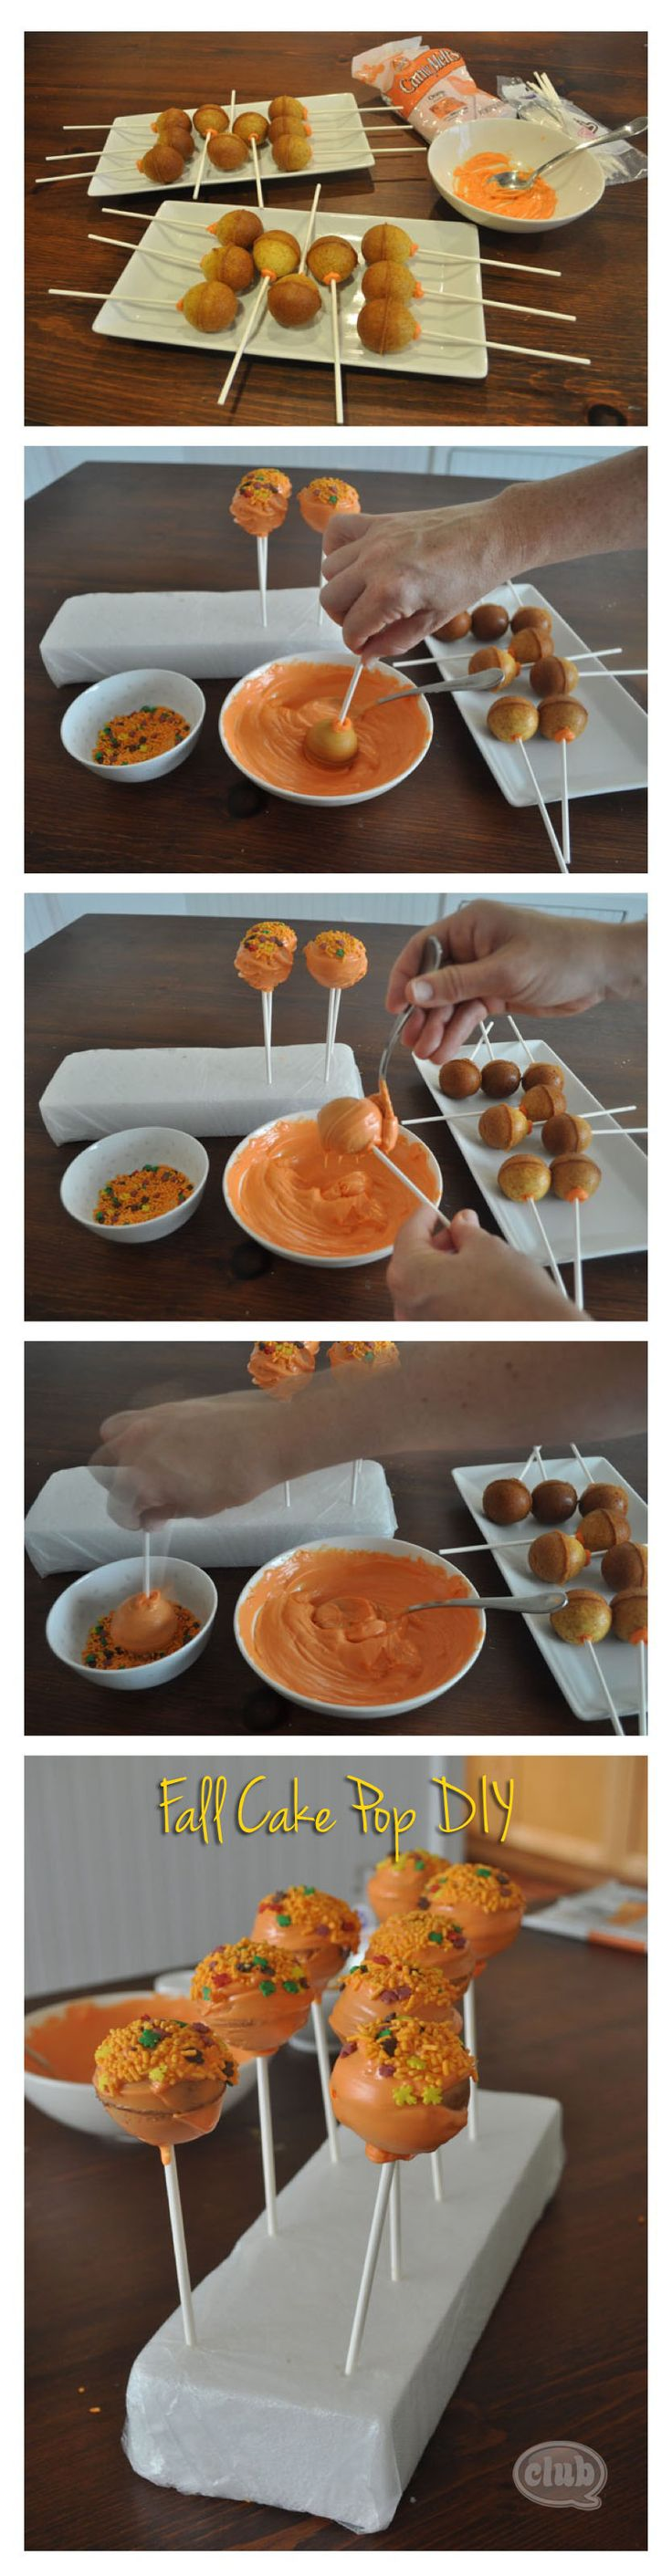 Tips and Techniques for using a Cake Pop Pan to make Fall Cake Pops | Tween Craft Ideas for Mom and Daughter